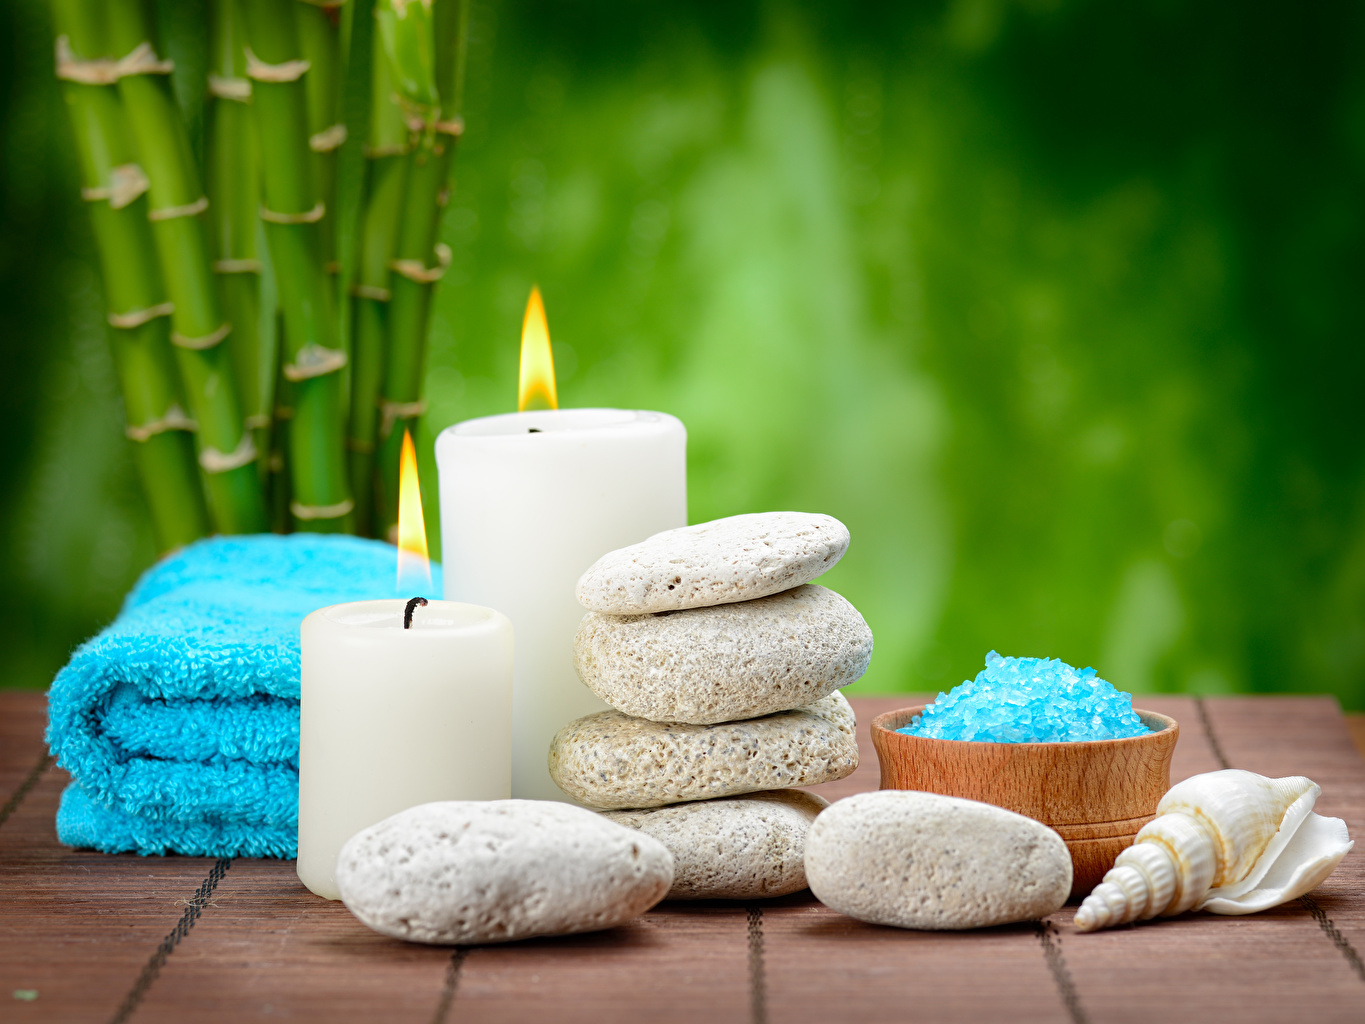 Images Spa Salt flame Shells stone Candles Fire Stones